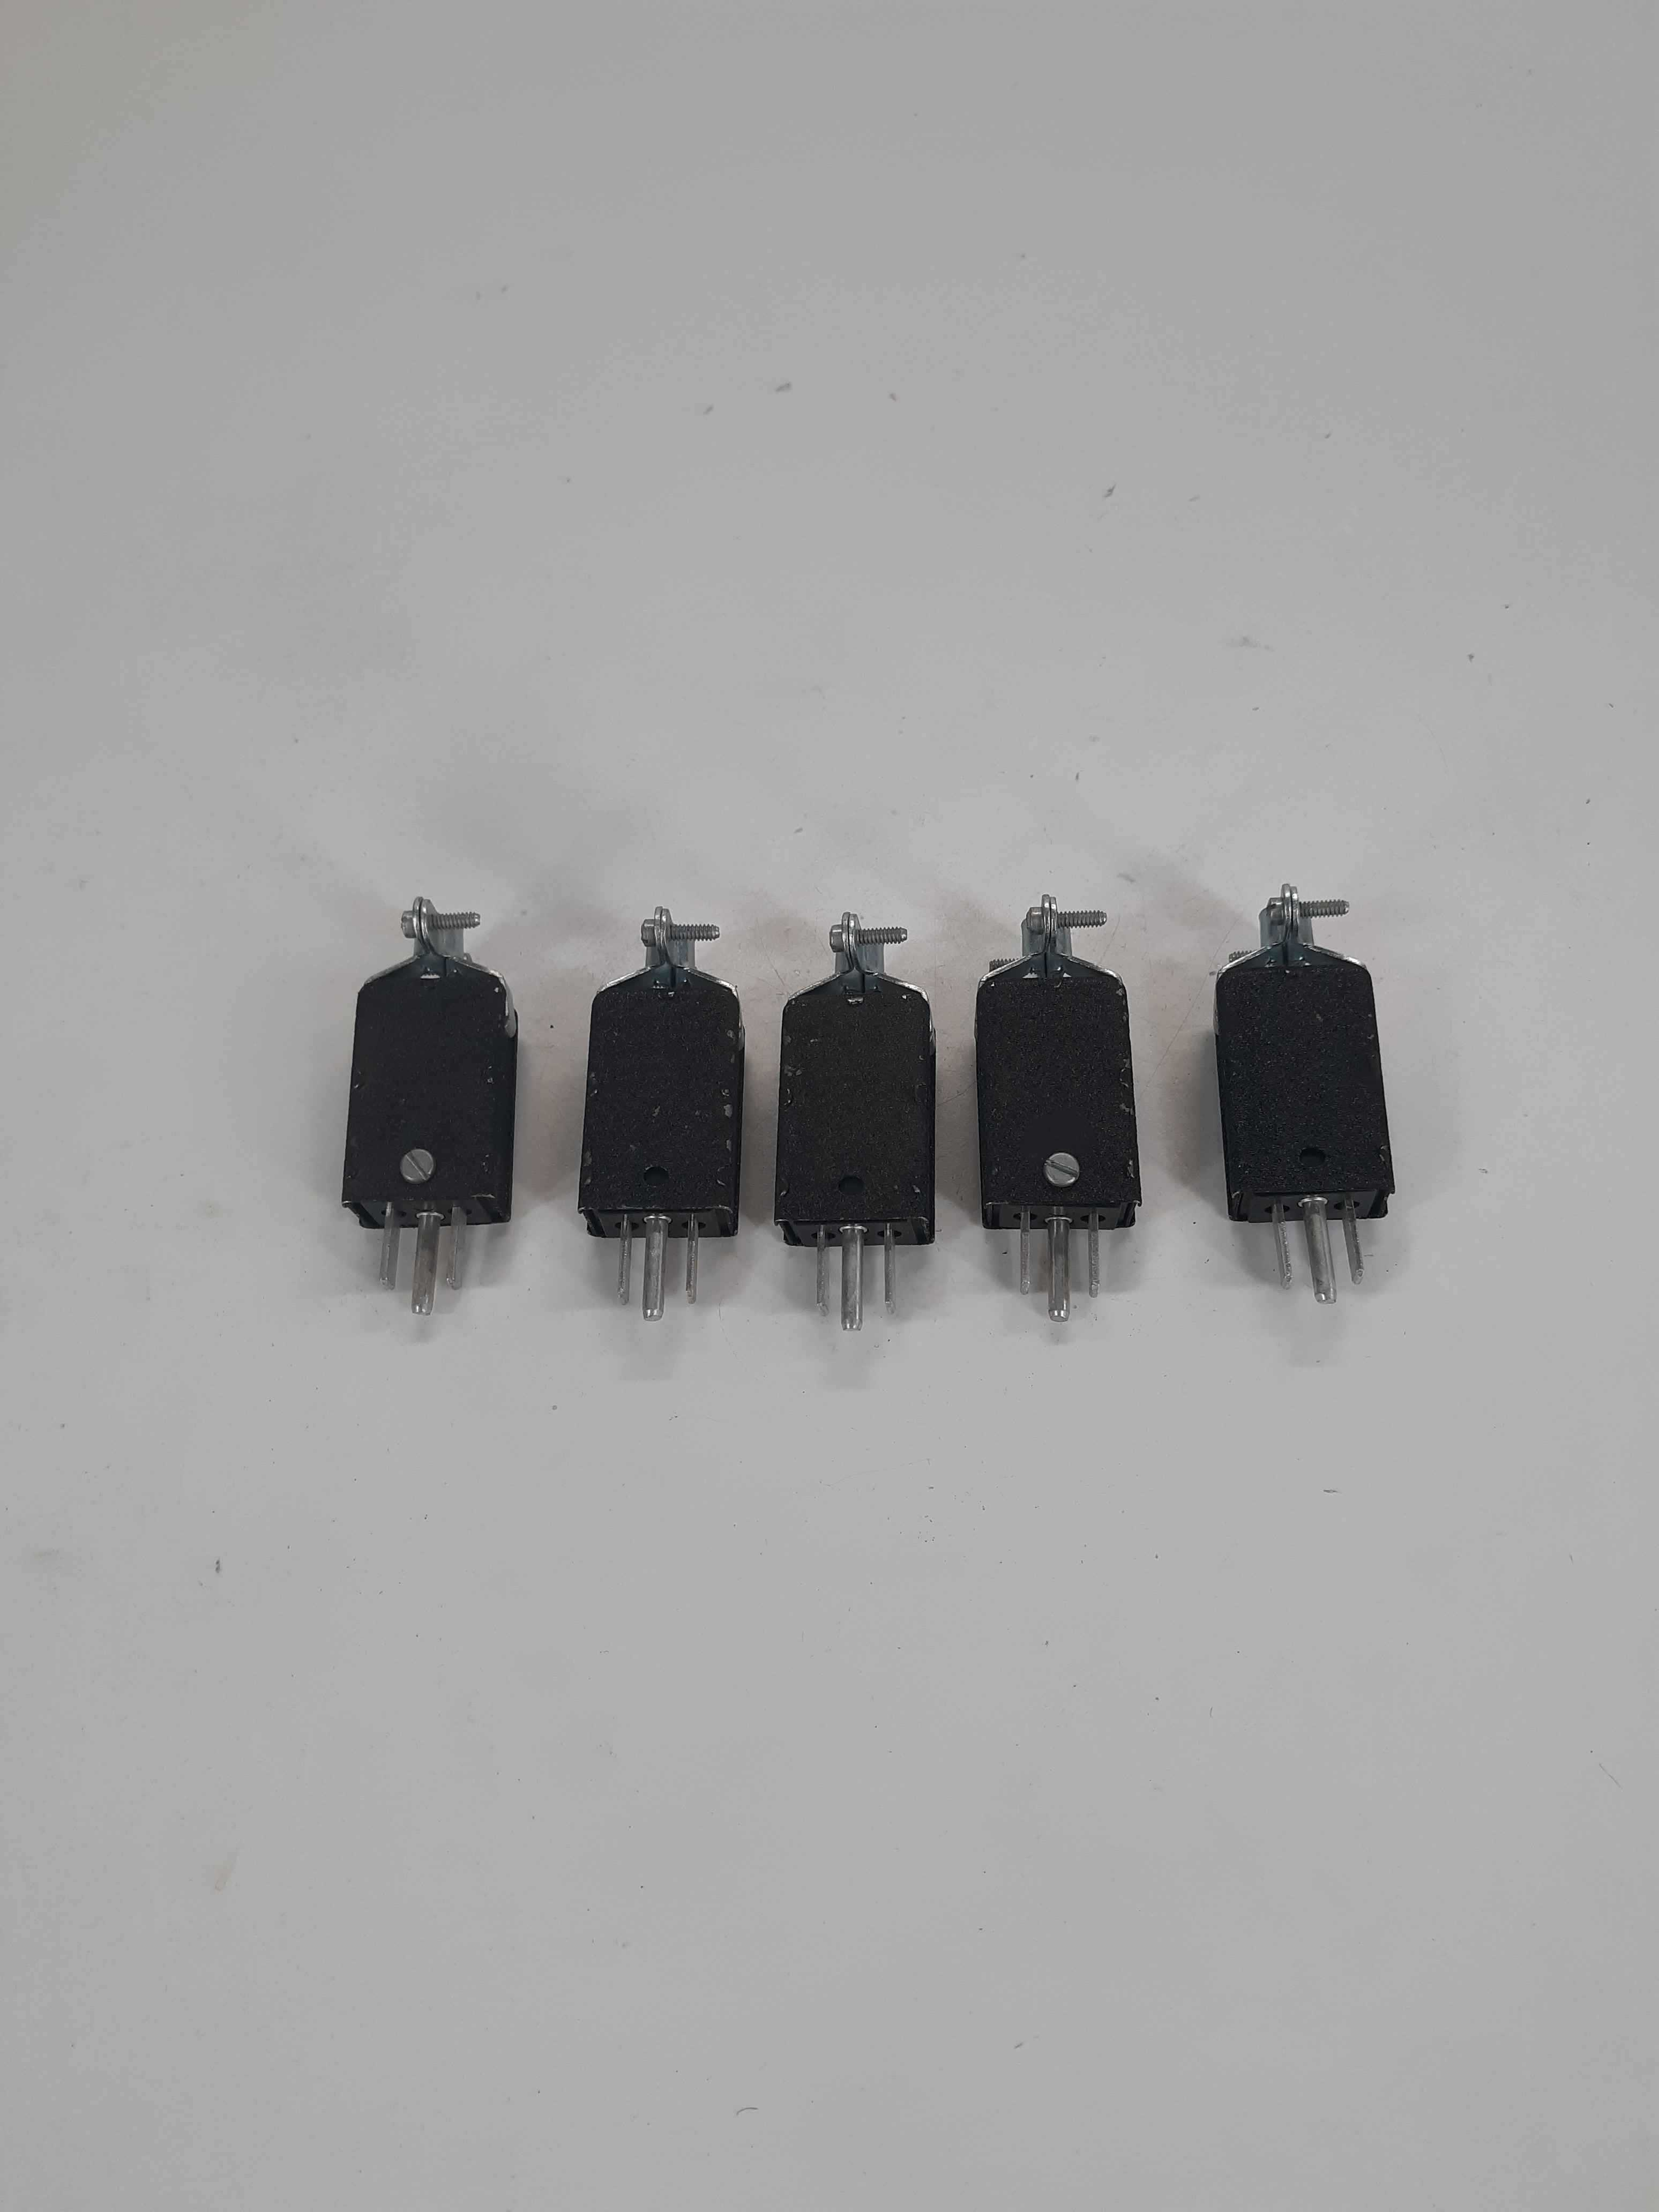 TRW Cinch Plug 3 Contact lot of 5